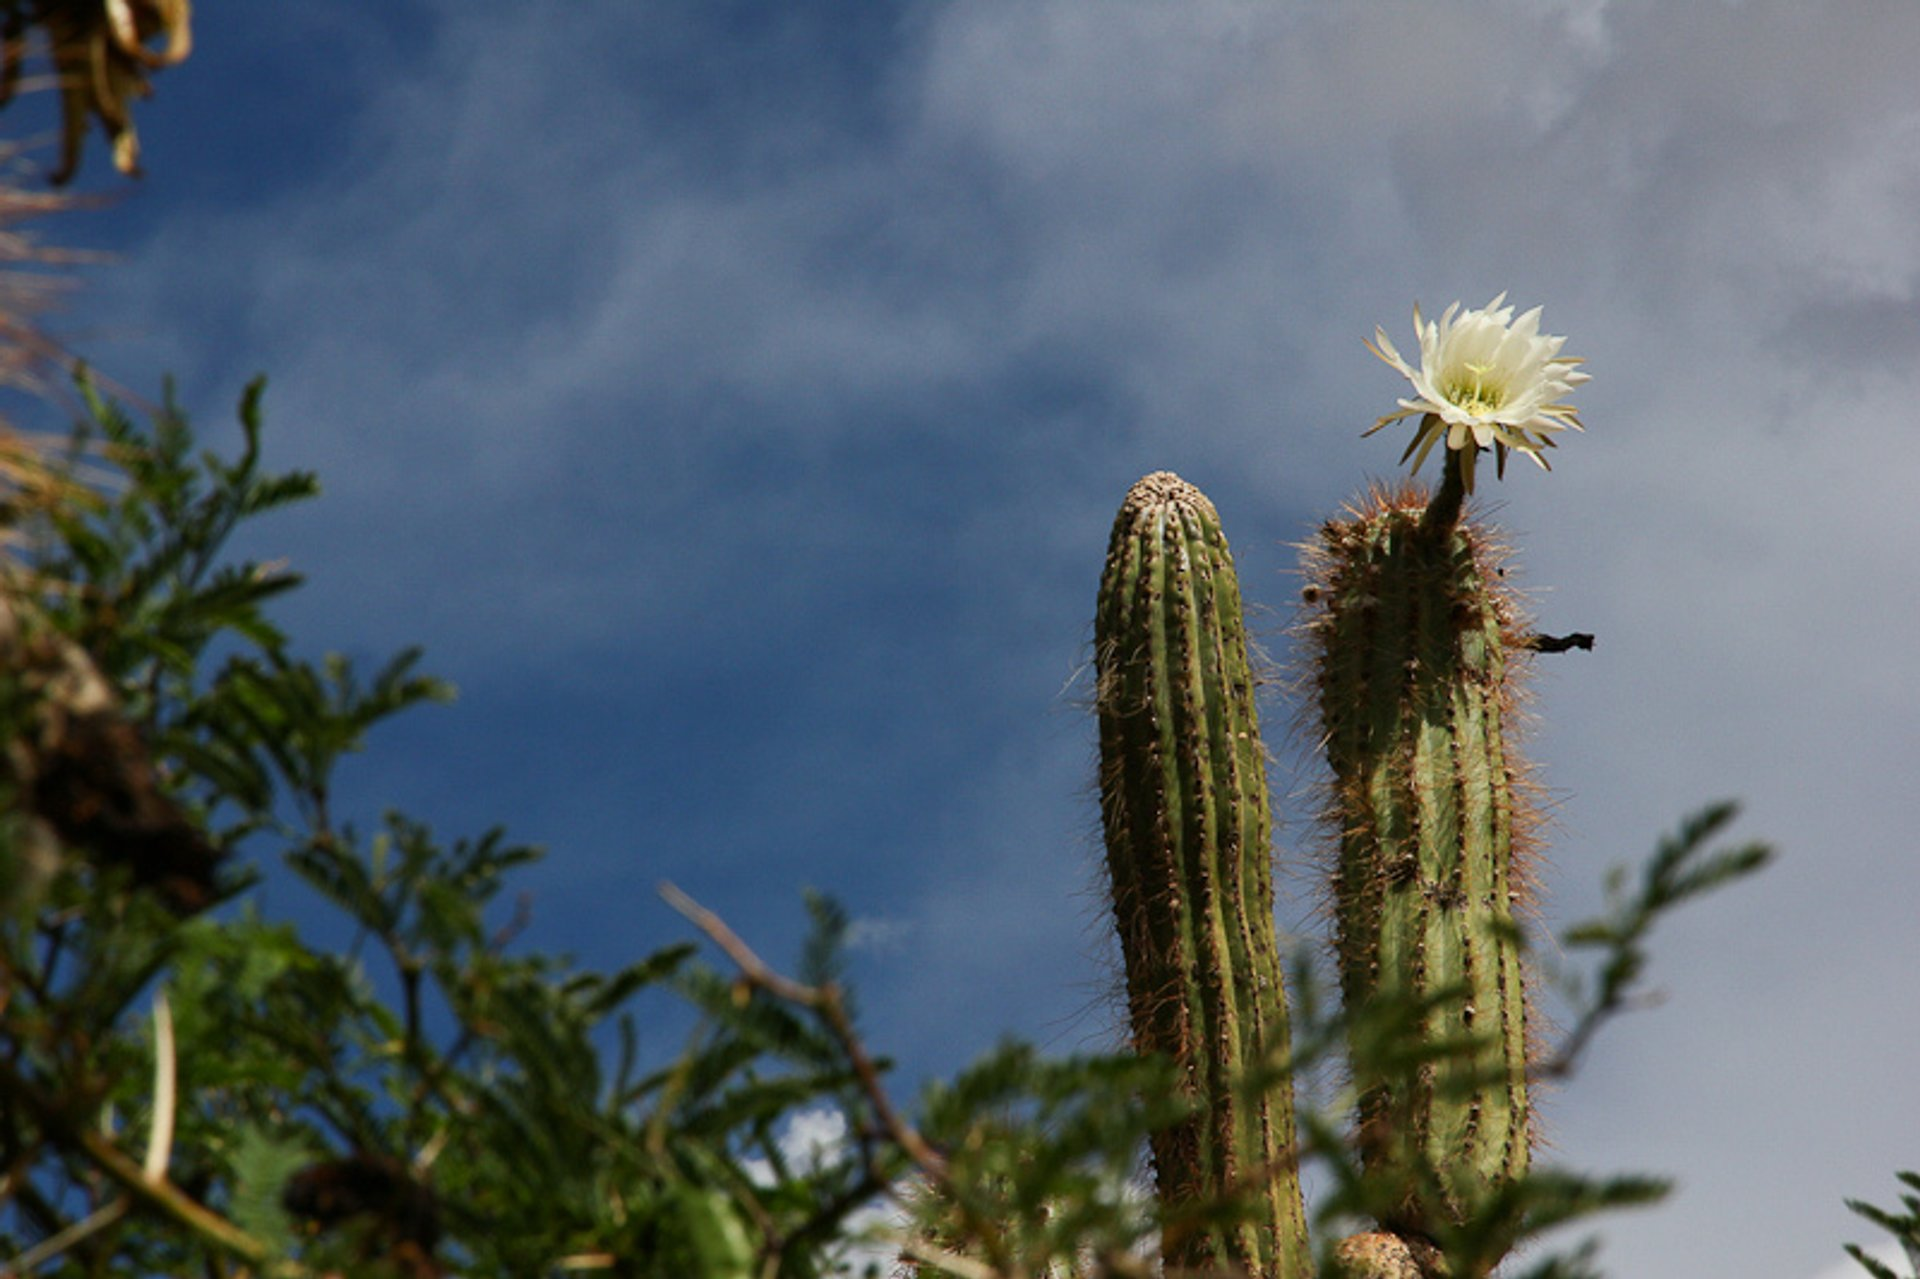 Blooming Cacti in Bolivia 2020 - Best Time